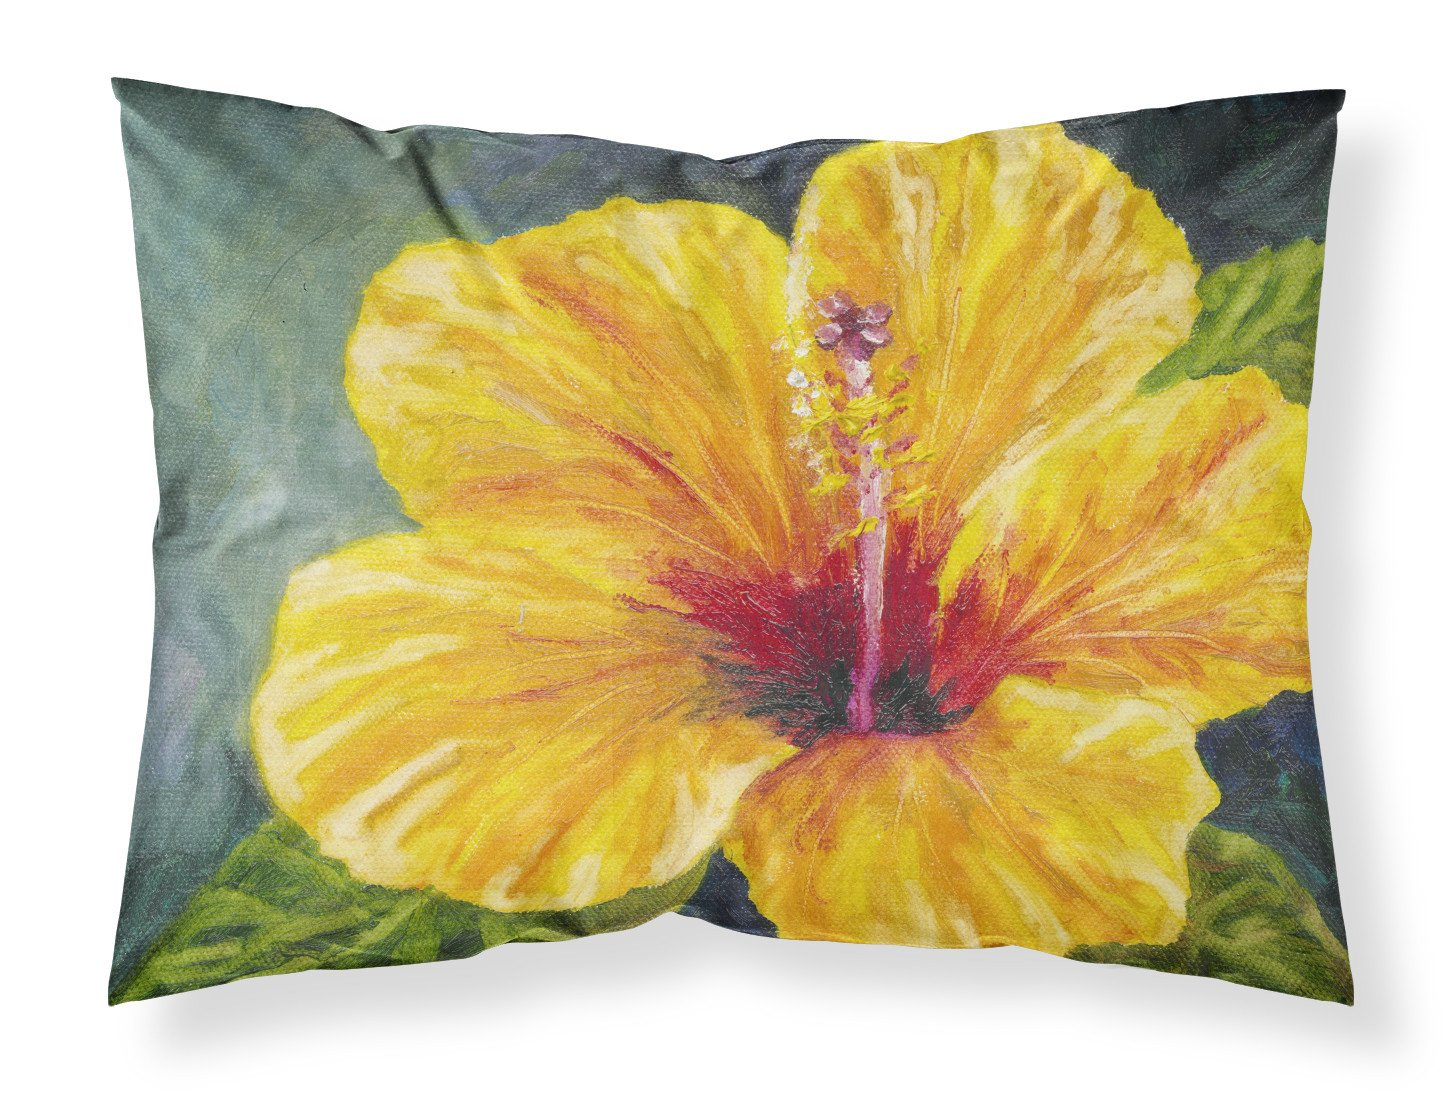 Yellow Hibiscus by Malenda Trick Fabric Standard Pillowcase TMTR0321PILLOWCASE by Caroline's Treasures